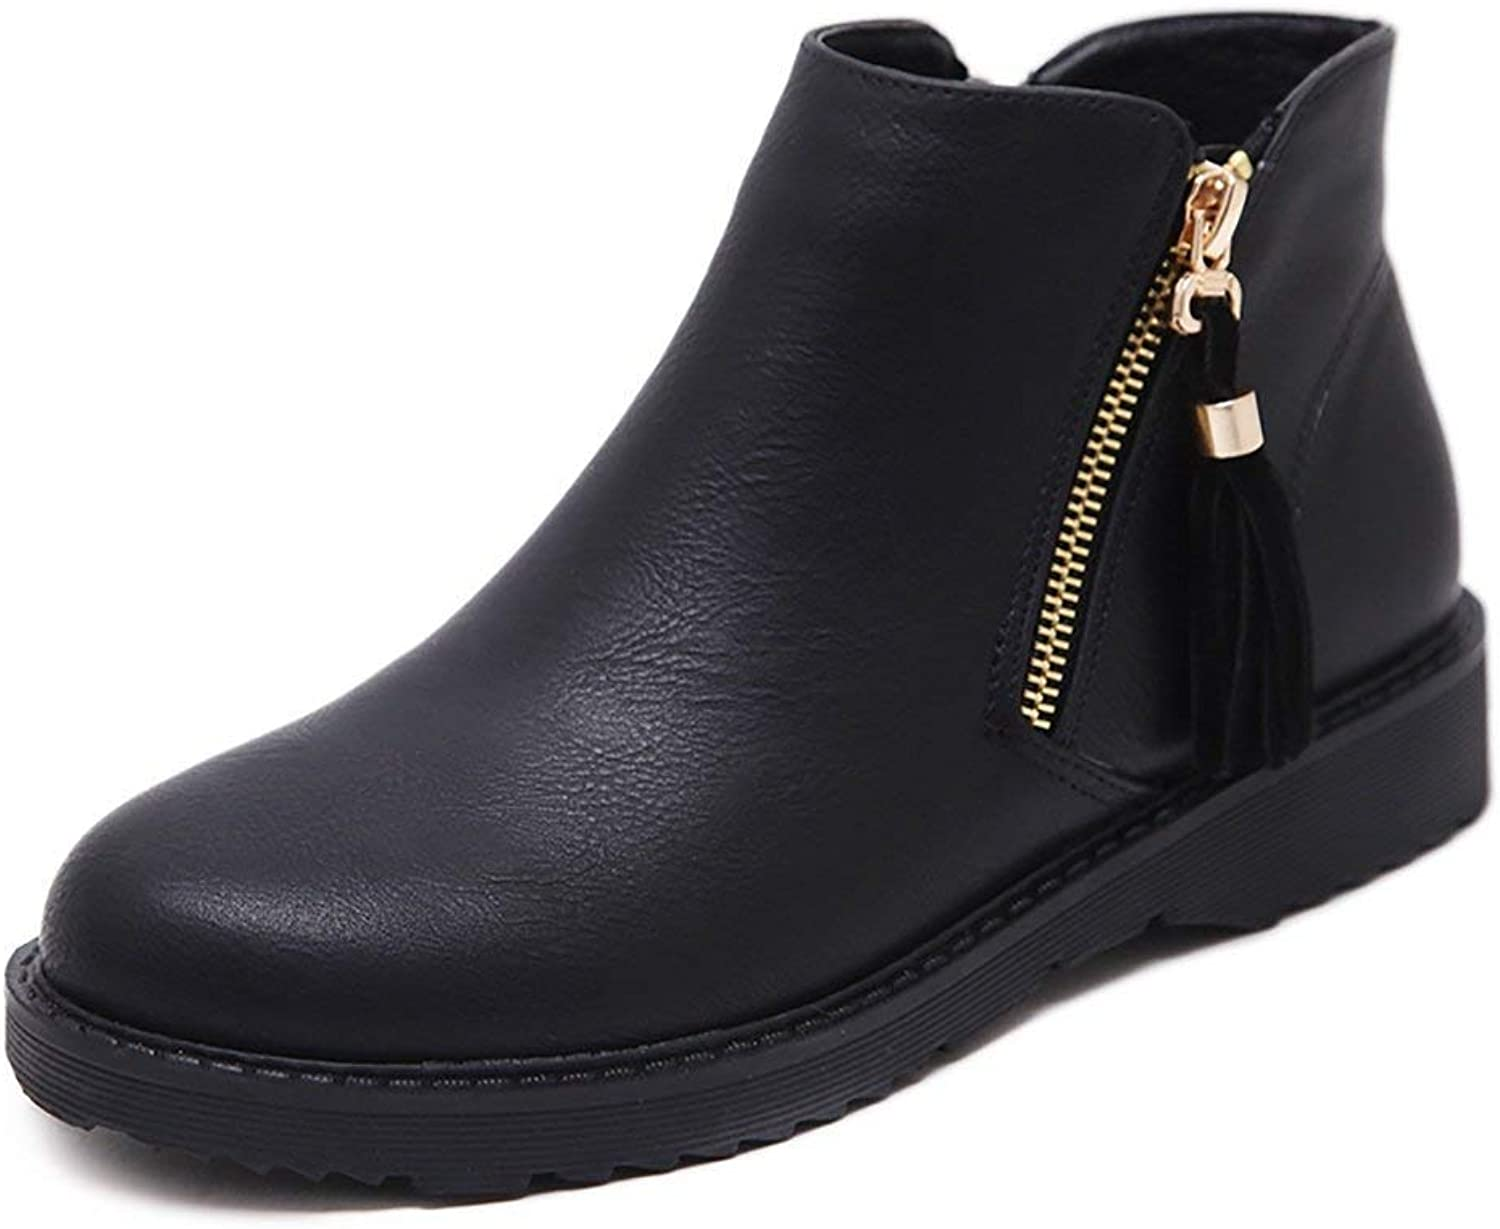 A-LING Womens Boots Leather Suede Low Heel Zipper Ankle Bootie